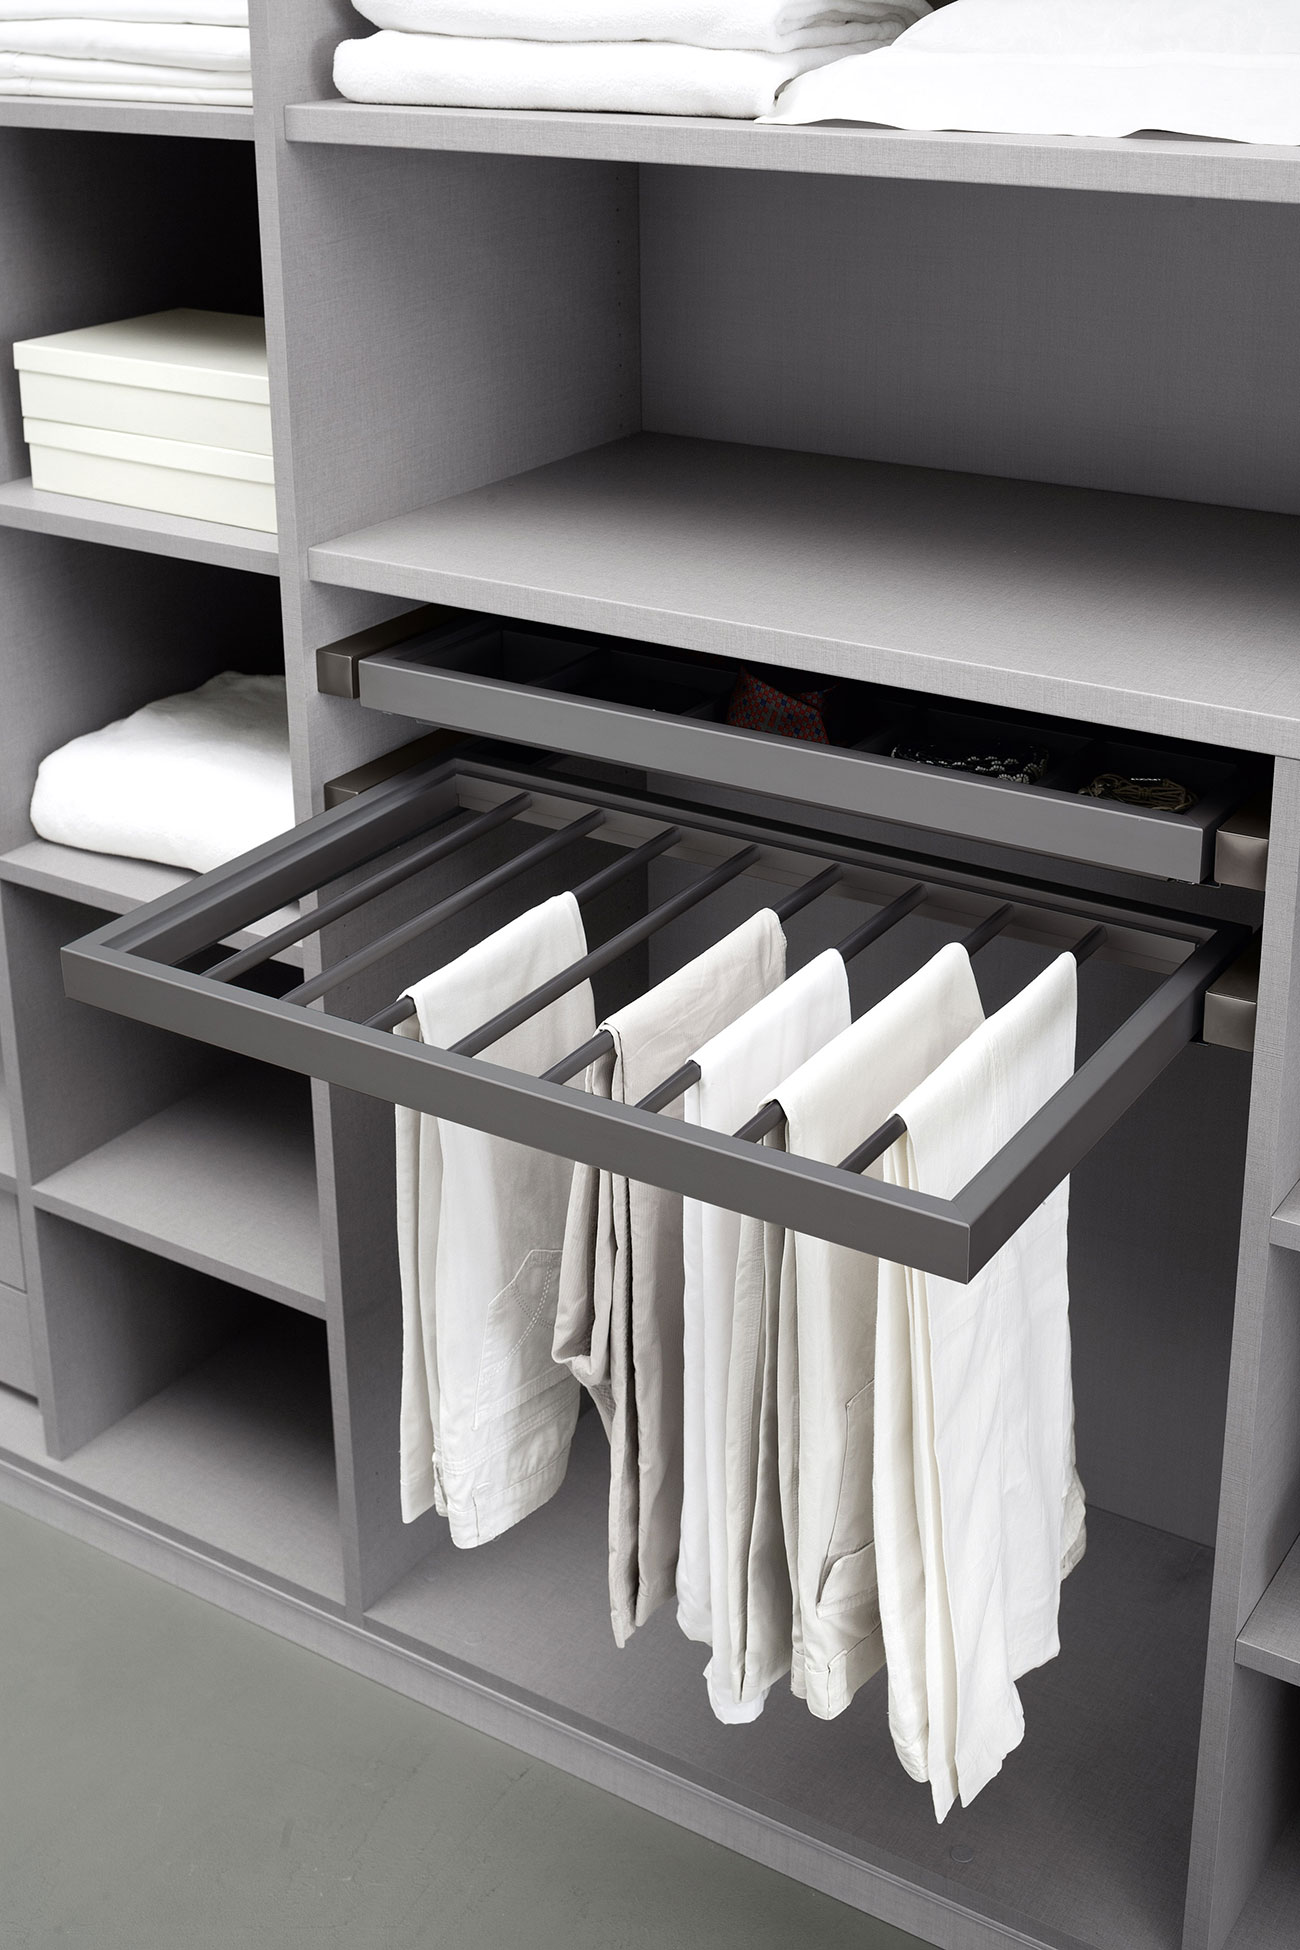 walk-in wardrobe with pull-out trousers hanger